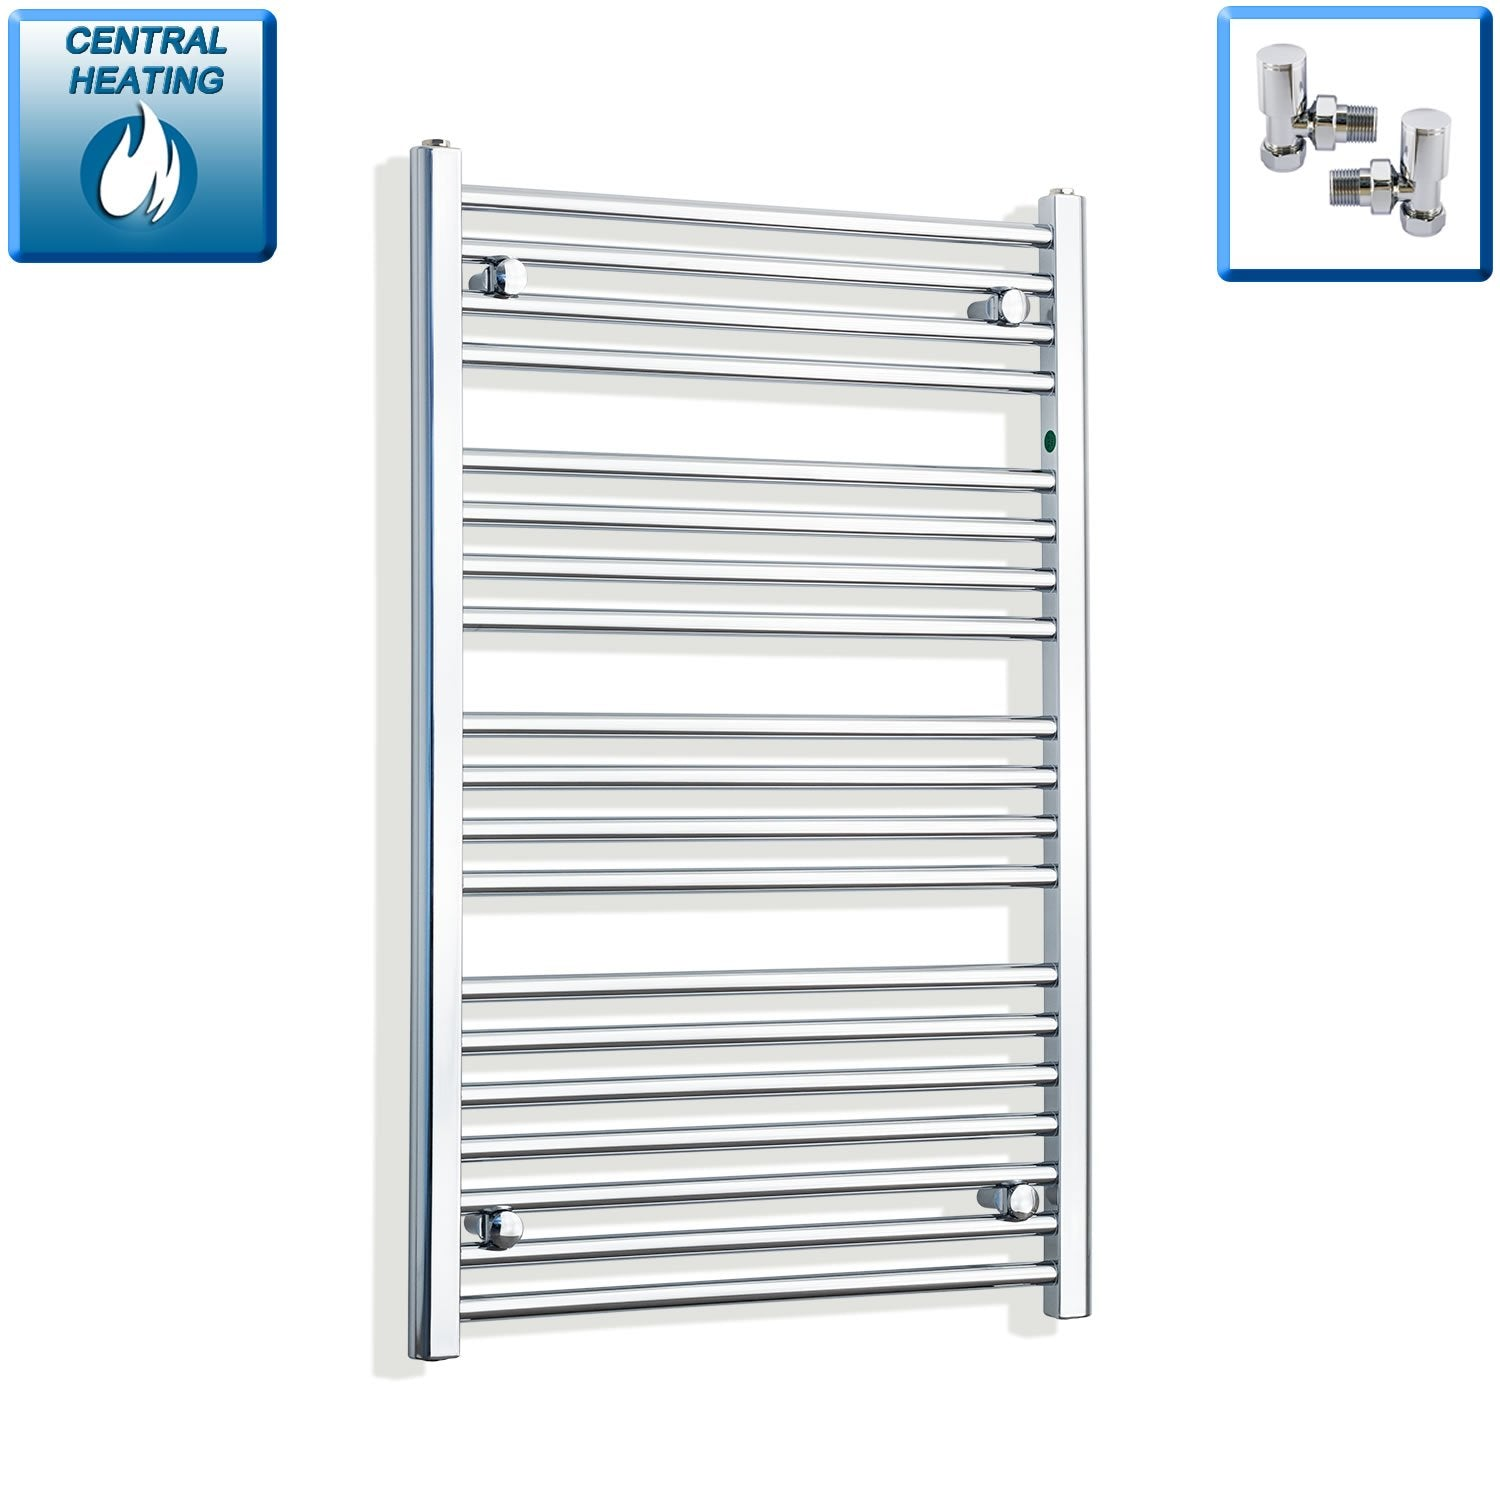 650mm Wide 1000mm High Flat Chrome Heated Towel Rail Radiator HTR,With Angled Valve